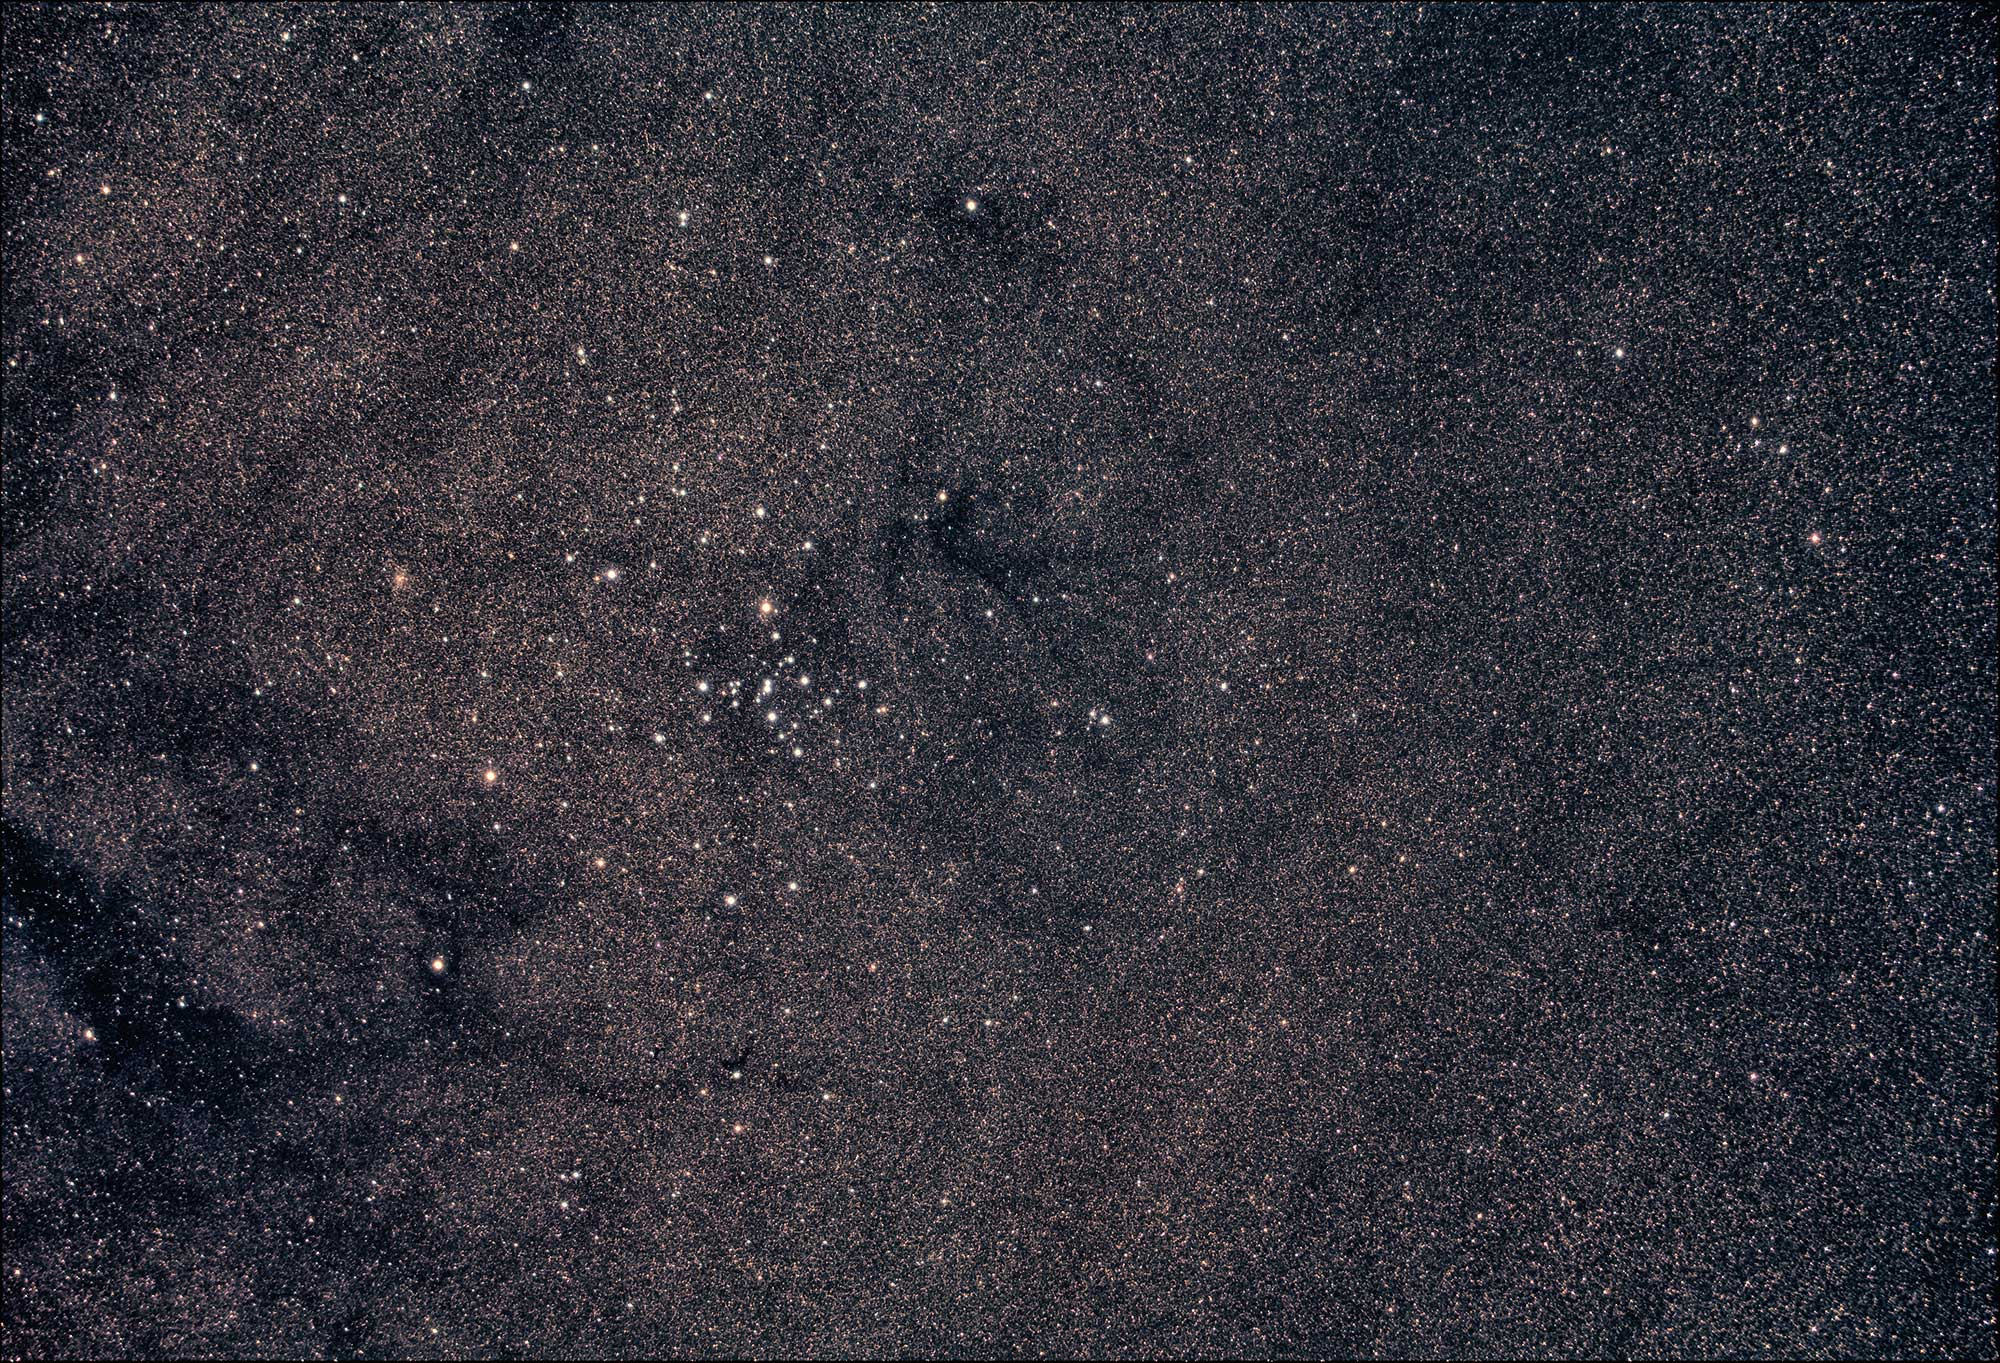 astrophotography of M7 with William Optics GT71 using asi 294 mcpro colour camera